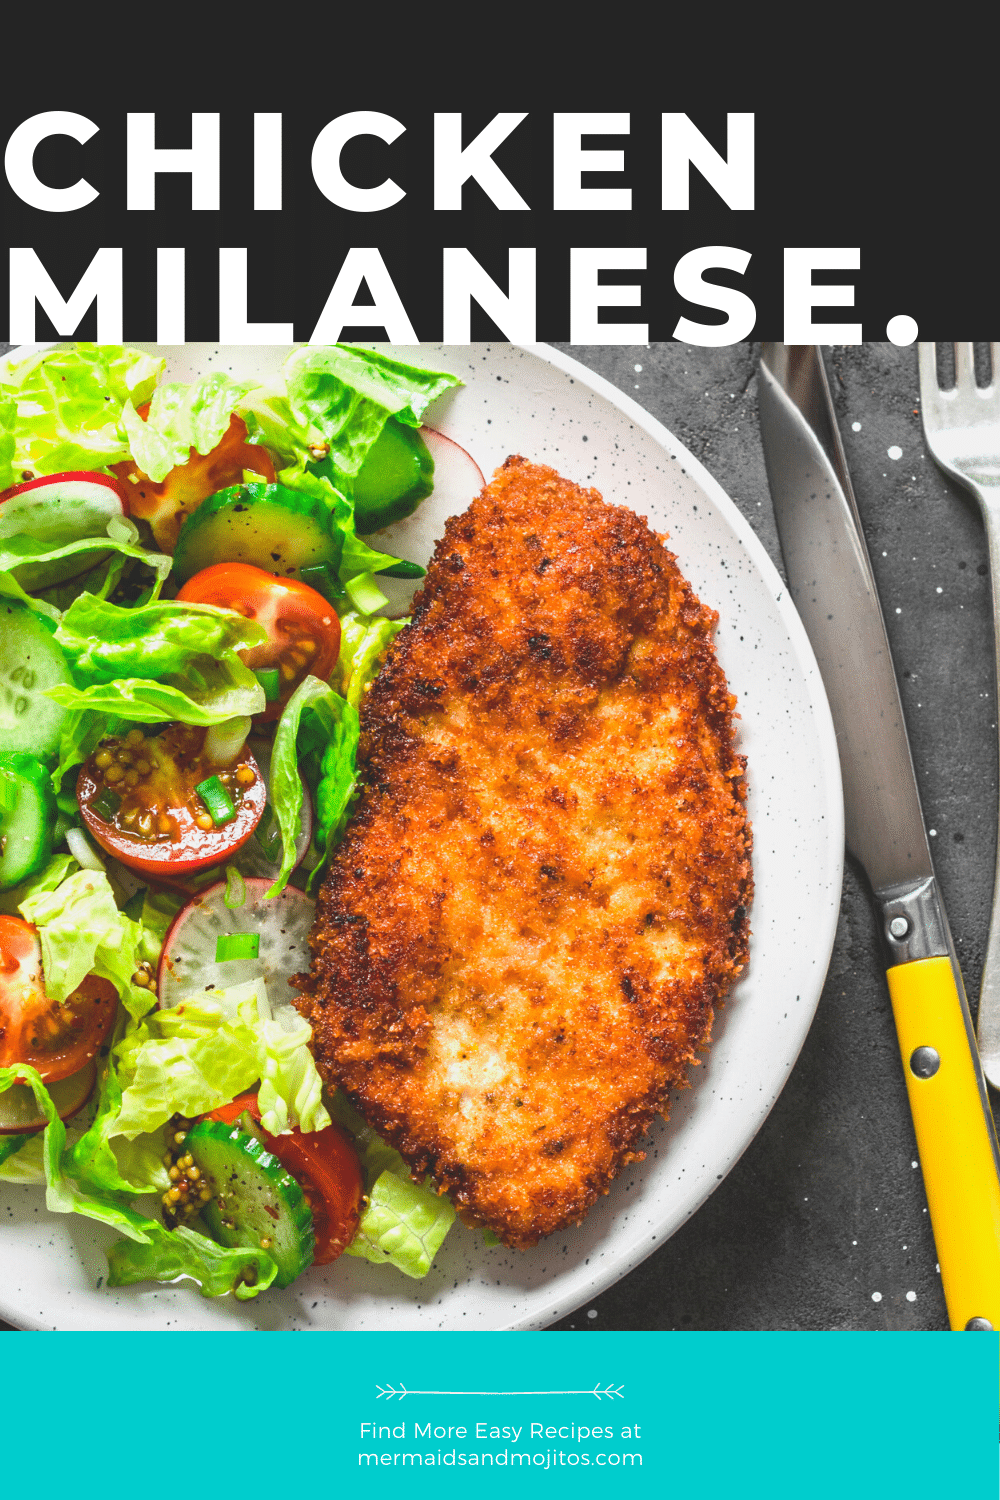 This simple Chicken Milanese is the perfect weeknight meal, ready in 30 minutes. This is an Italian classic, served with a squeeze of lemon and simple a salad. via @mermaidsandmojitos